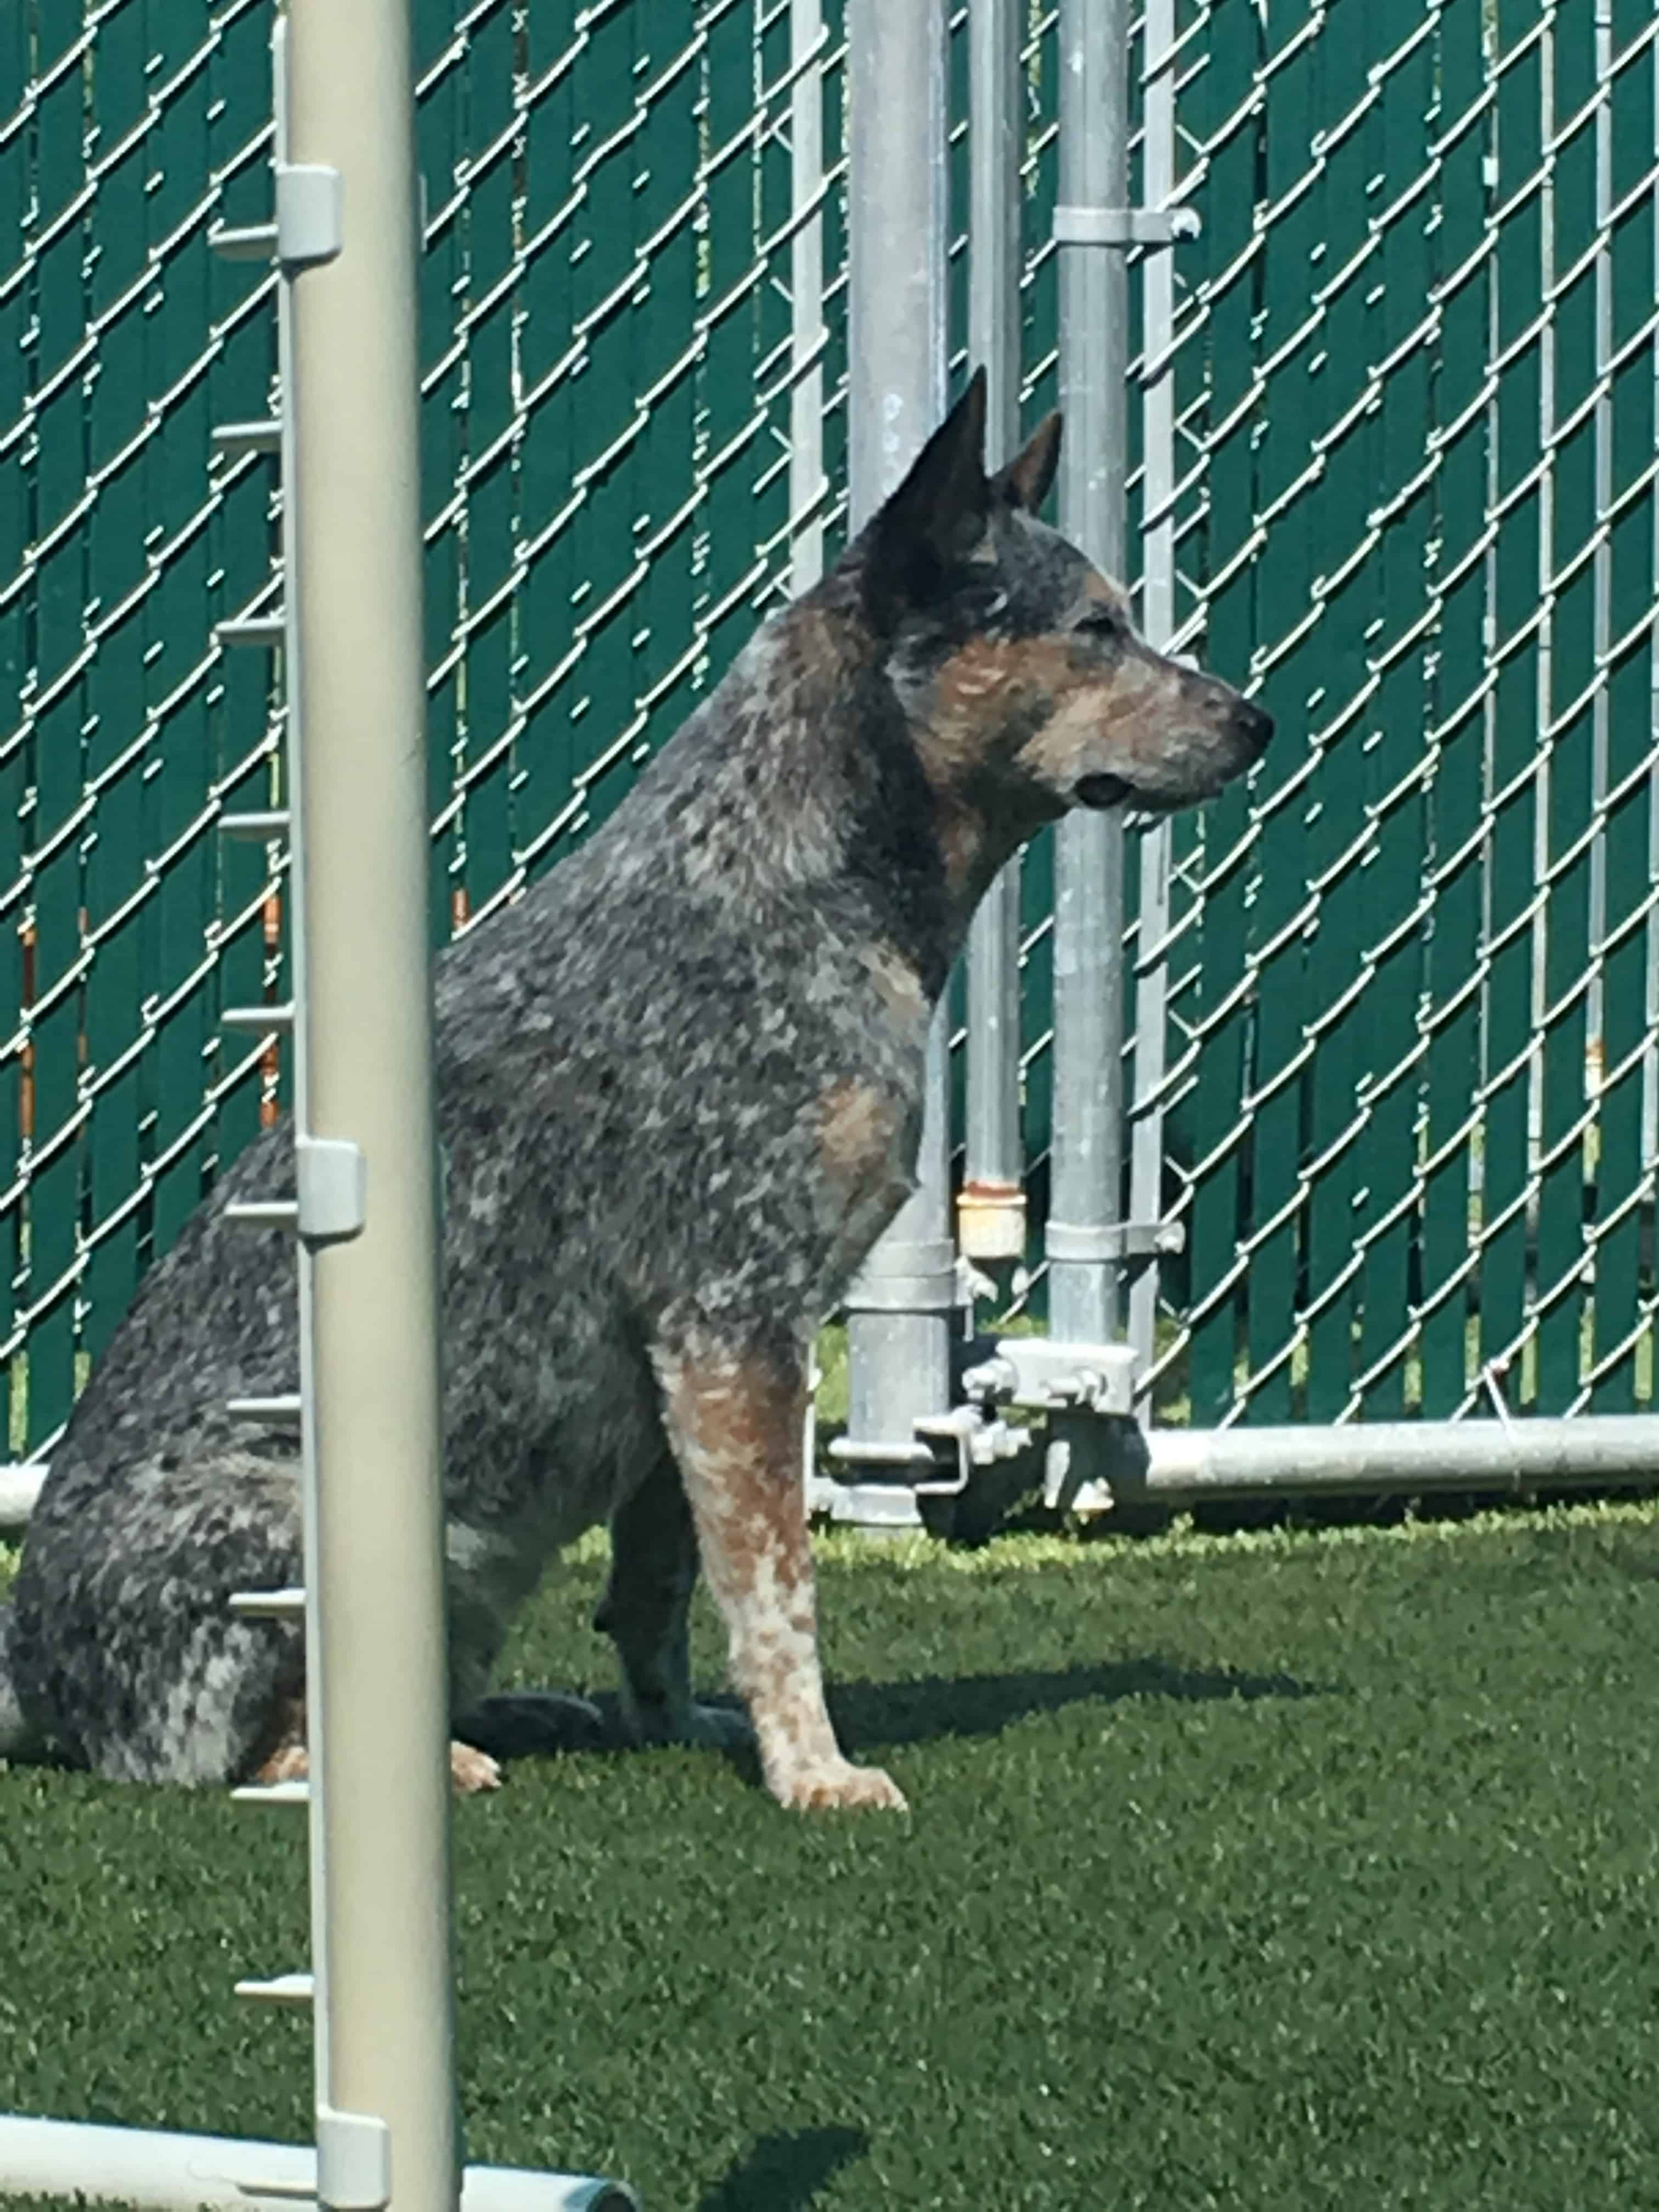 Australian Cattle Dog sleeping at Bayside Pet Resort in Sarasota, FL